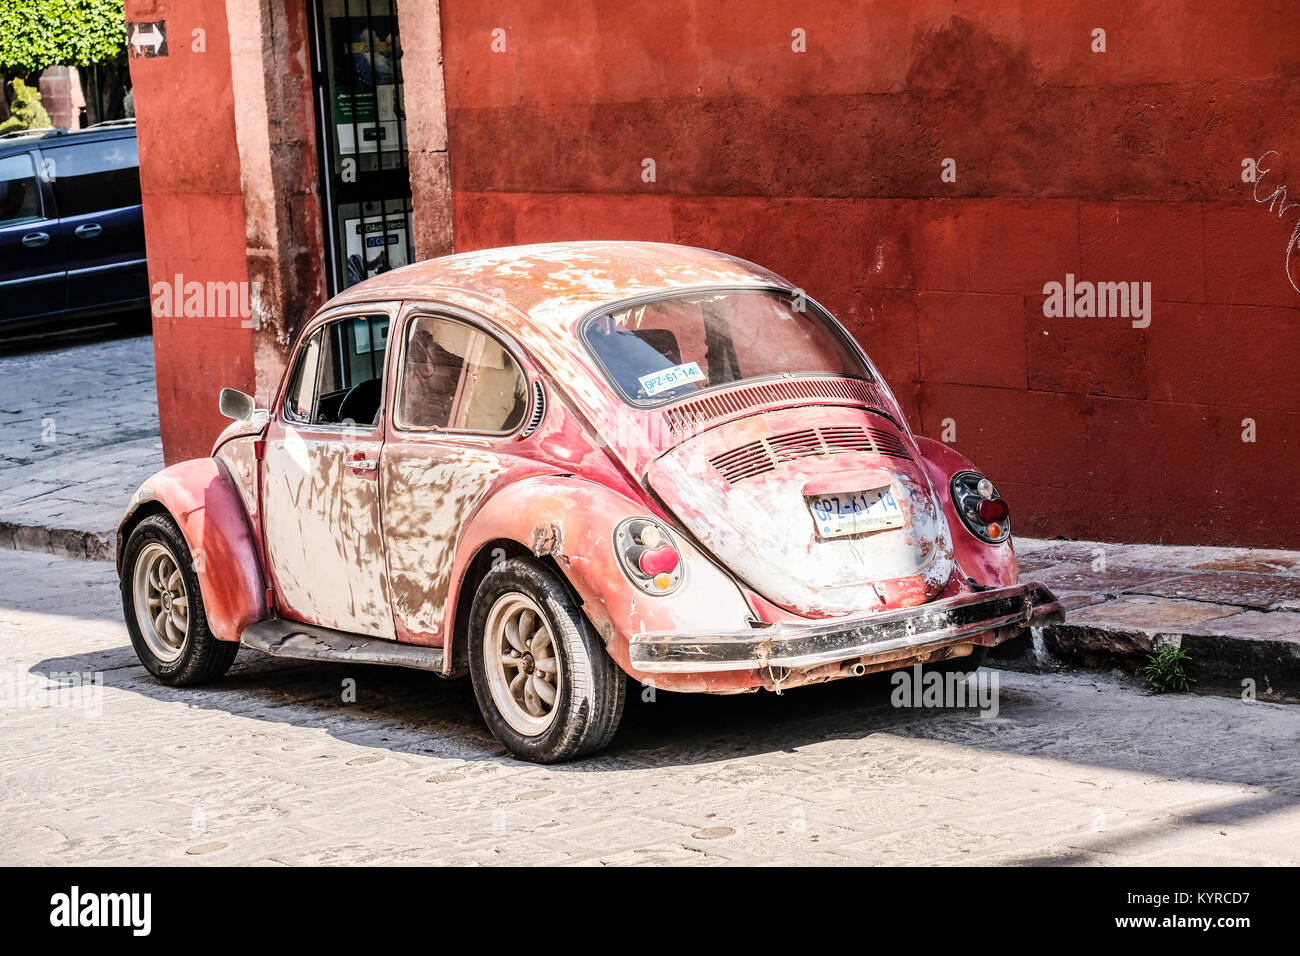 A very old adn beat up fade red colored Volkswagen Beetle parked at a street corner in San Miguel de Allende,Mexico - Stock Image